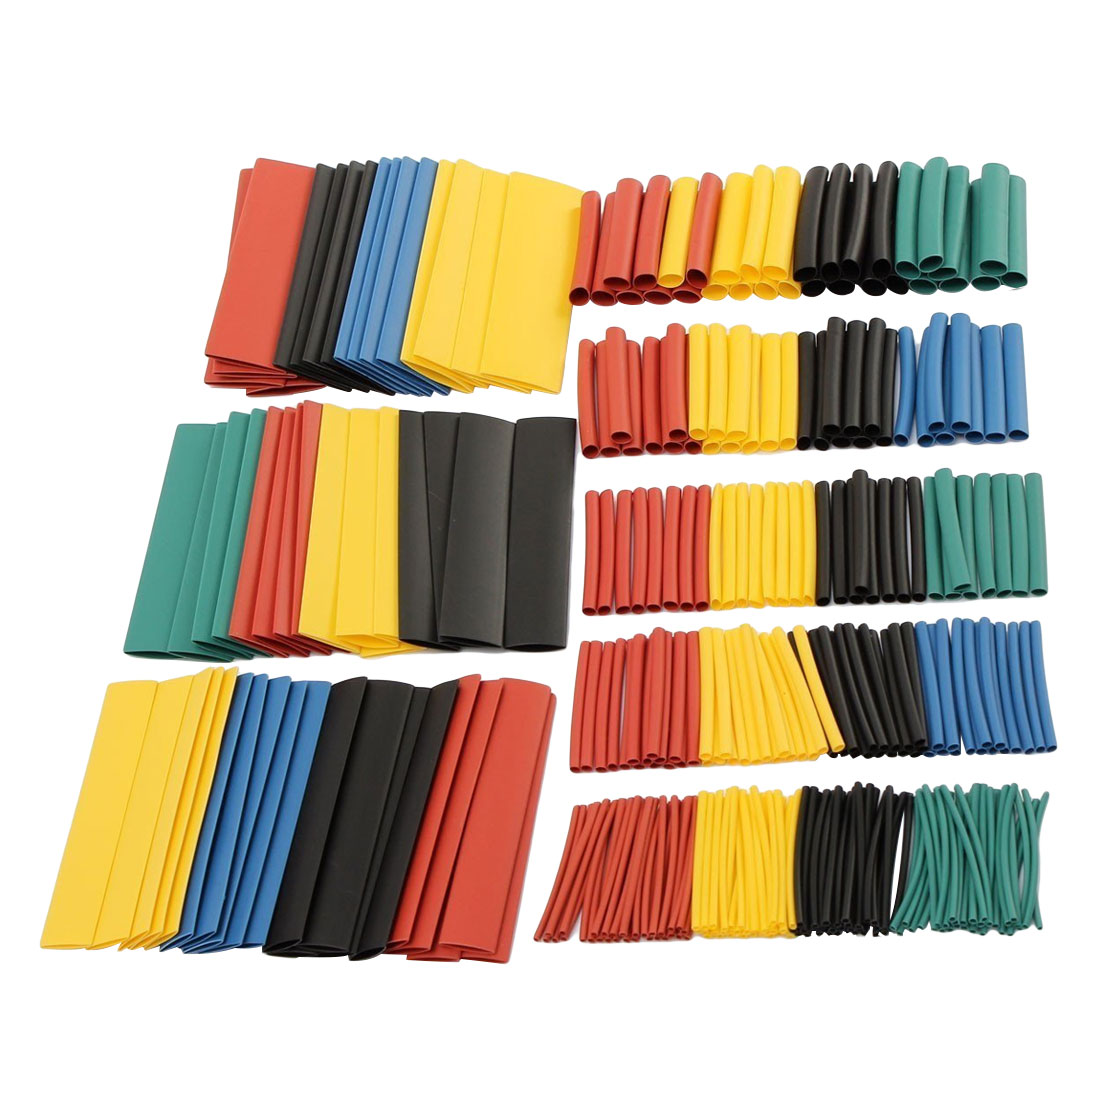 328Pcs 8 Sizes Multi Color Polyolefin 2:1 Halogen-Free Heat Shrink Tubing Tube Assortment Sleeving Wrap Tubes blue polyolefin 3 0mm x 200 meters heat shrink tubes 2 1